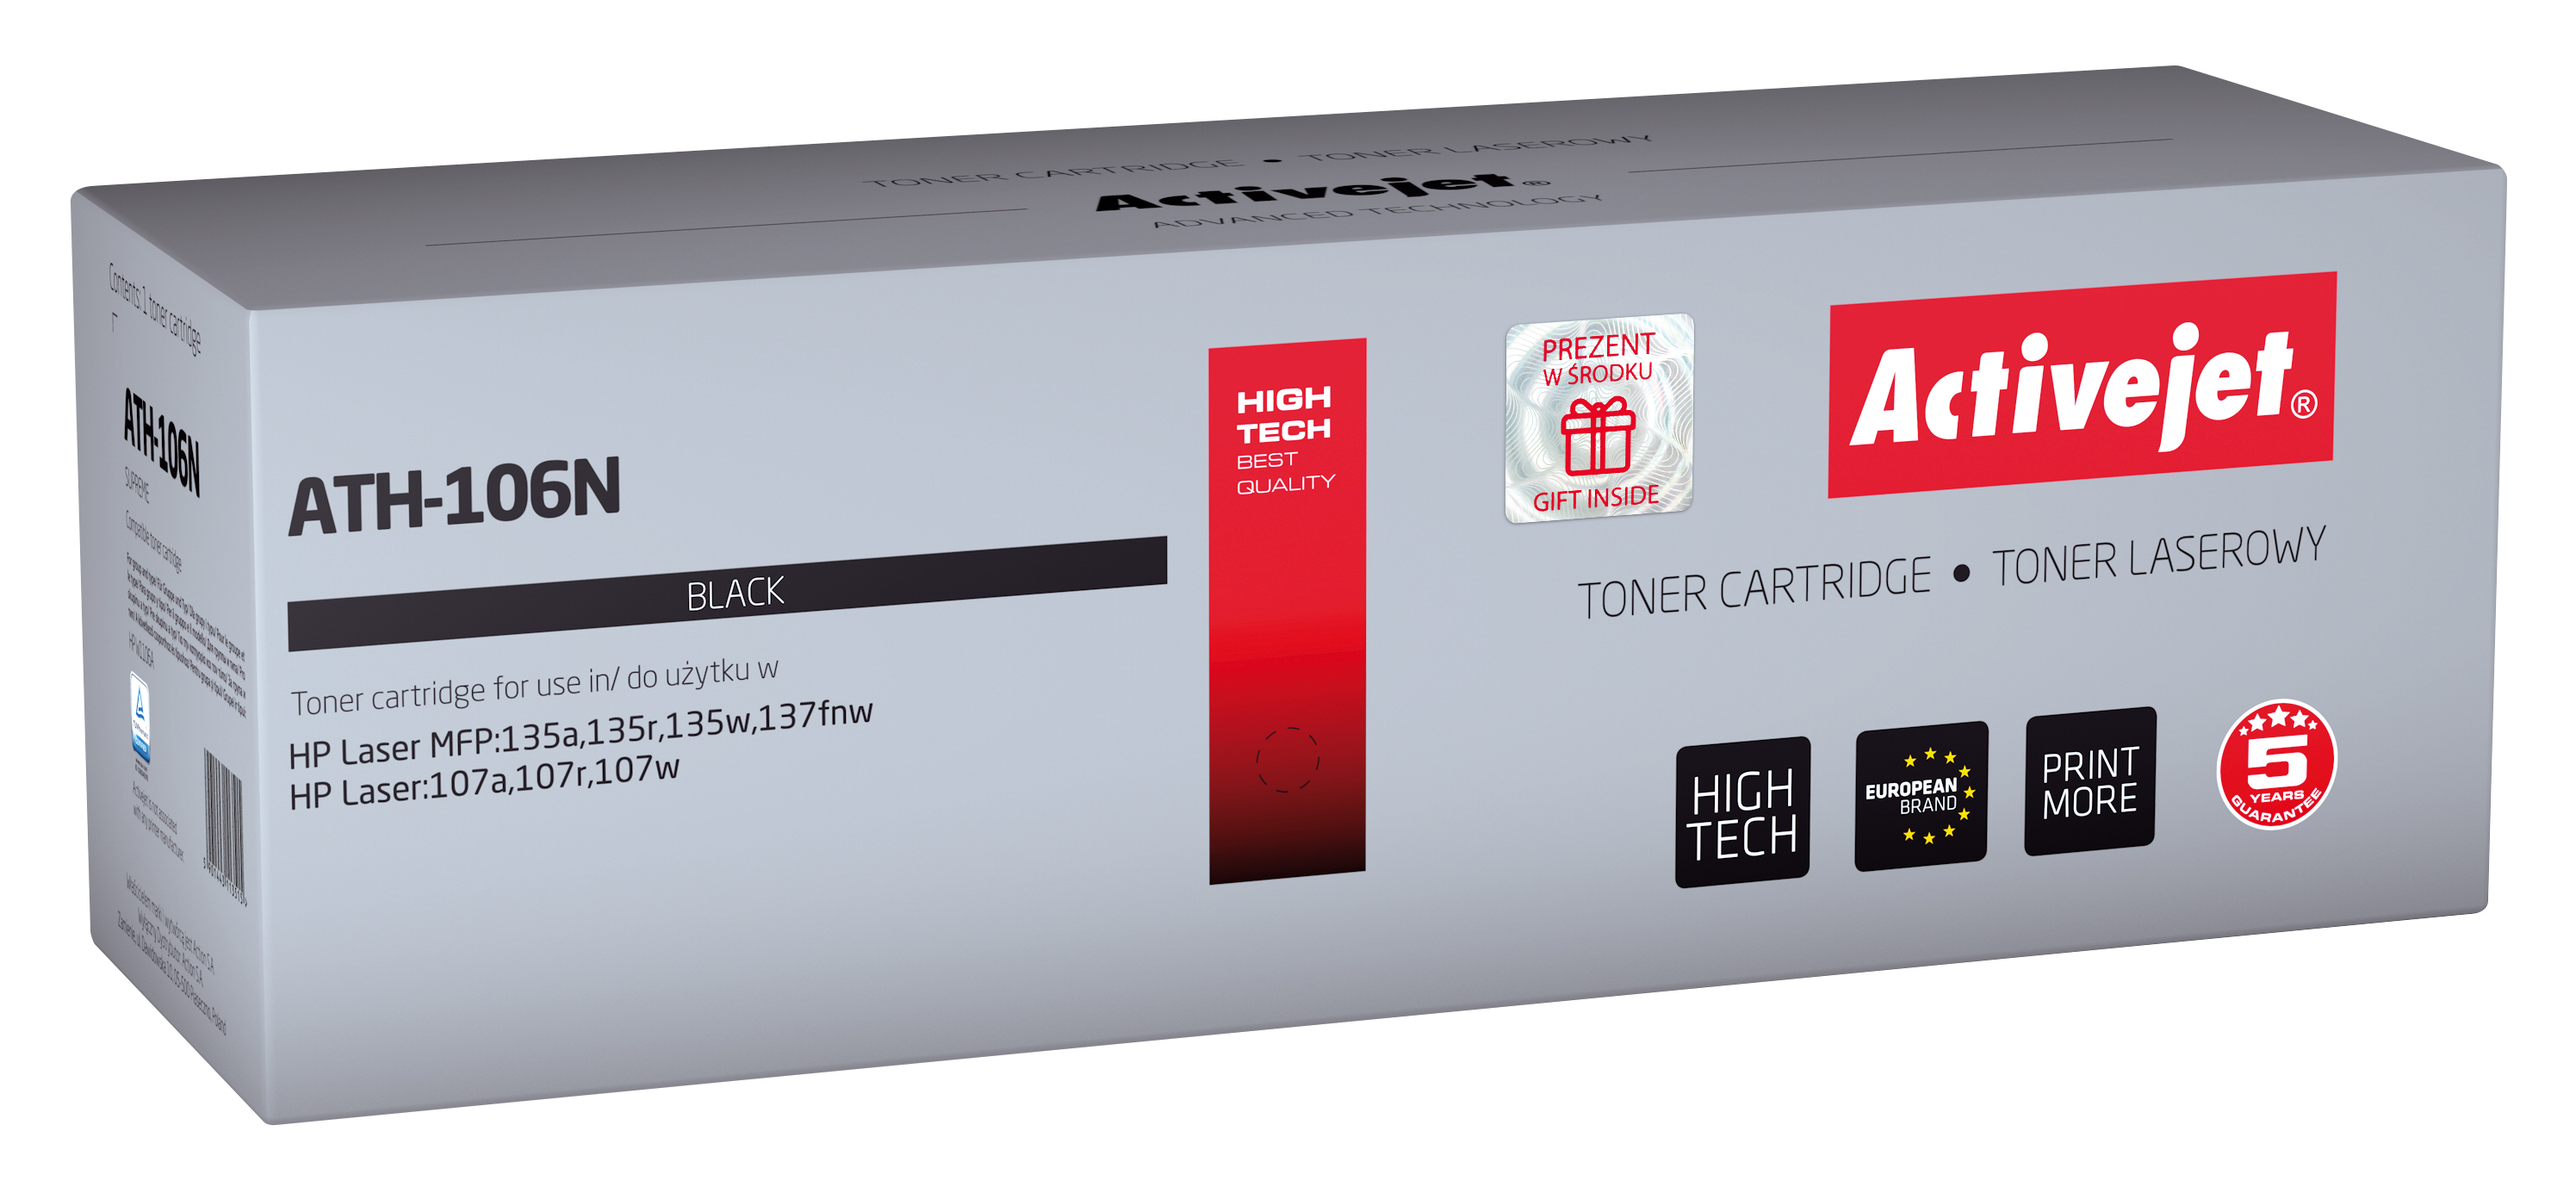 Activejet toner do HP 106A W1105A new ATH-106N